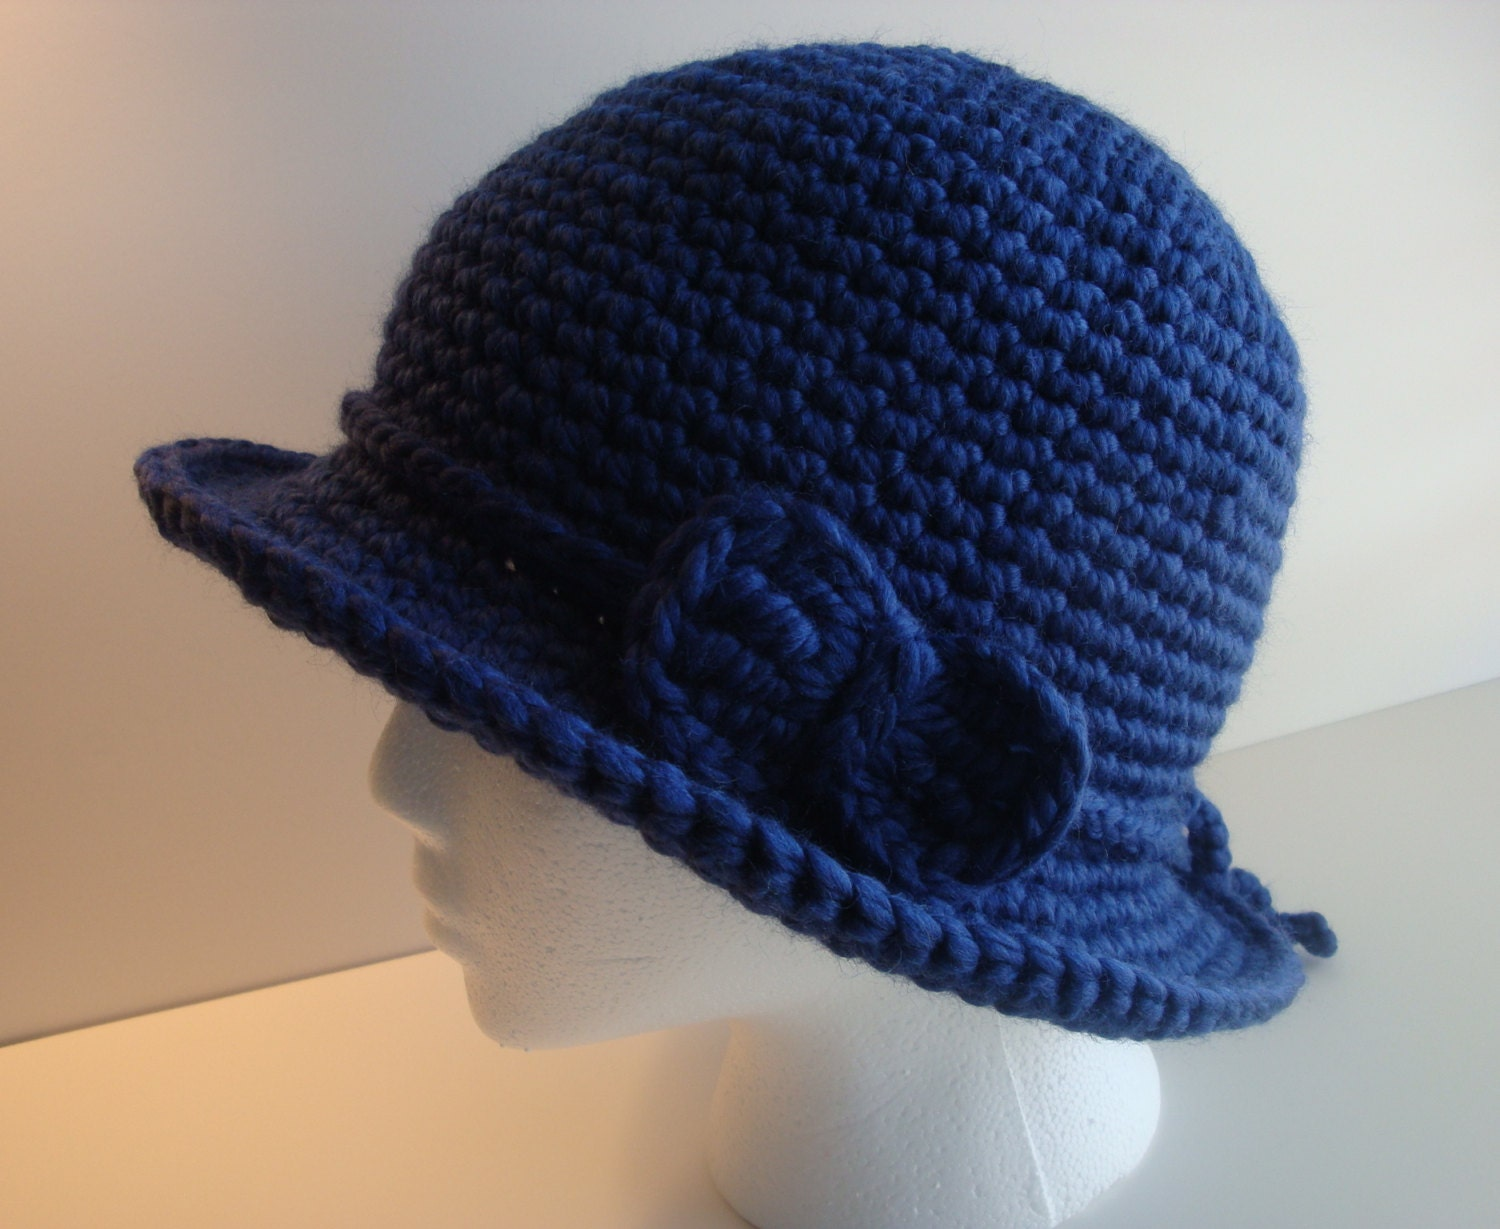 Crochet Cloche Hat Brim Pattern : Crochet Wide Brim Cloche Hat